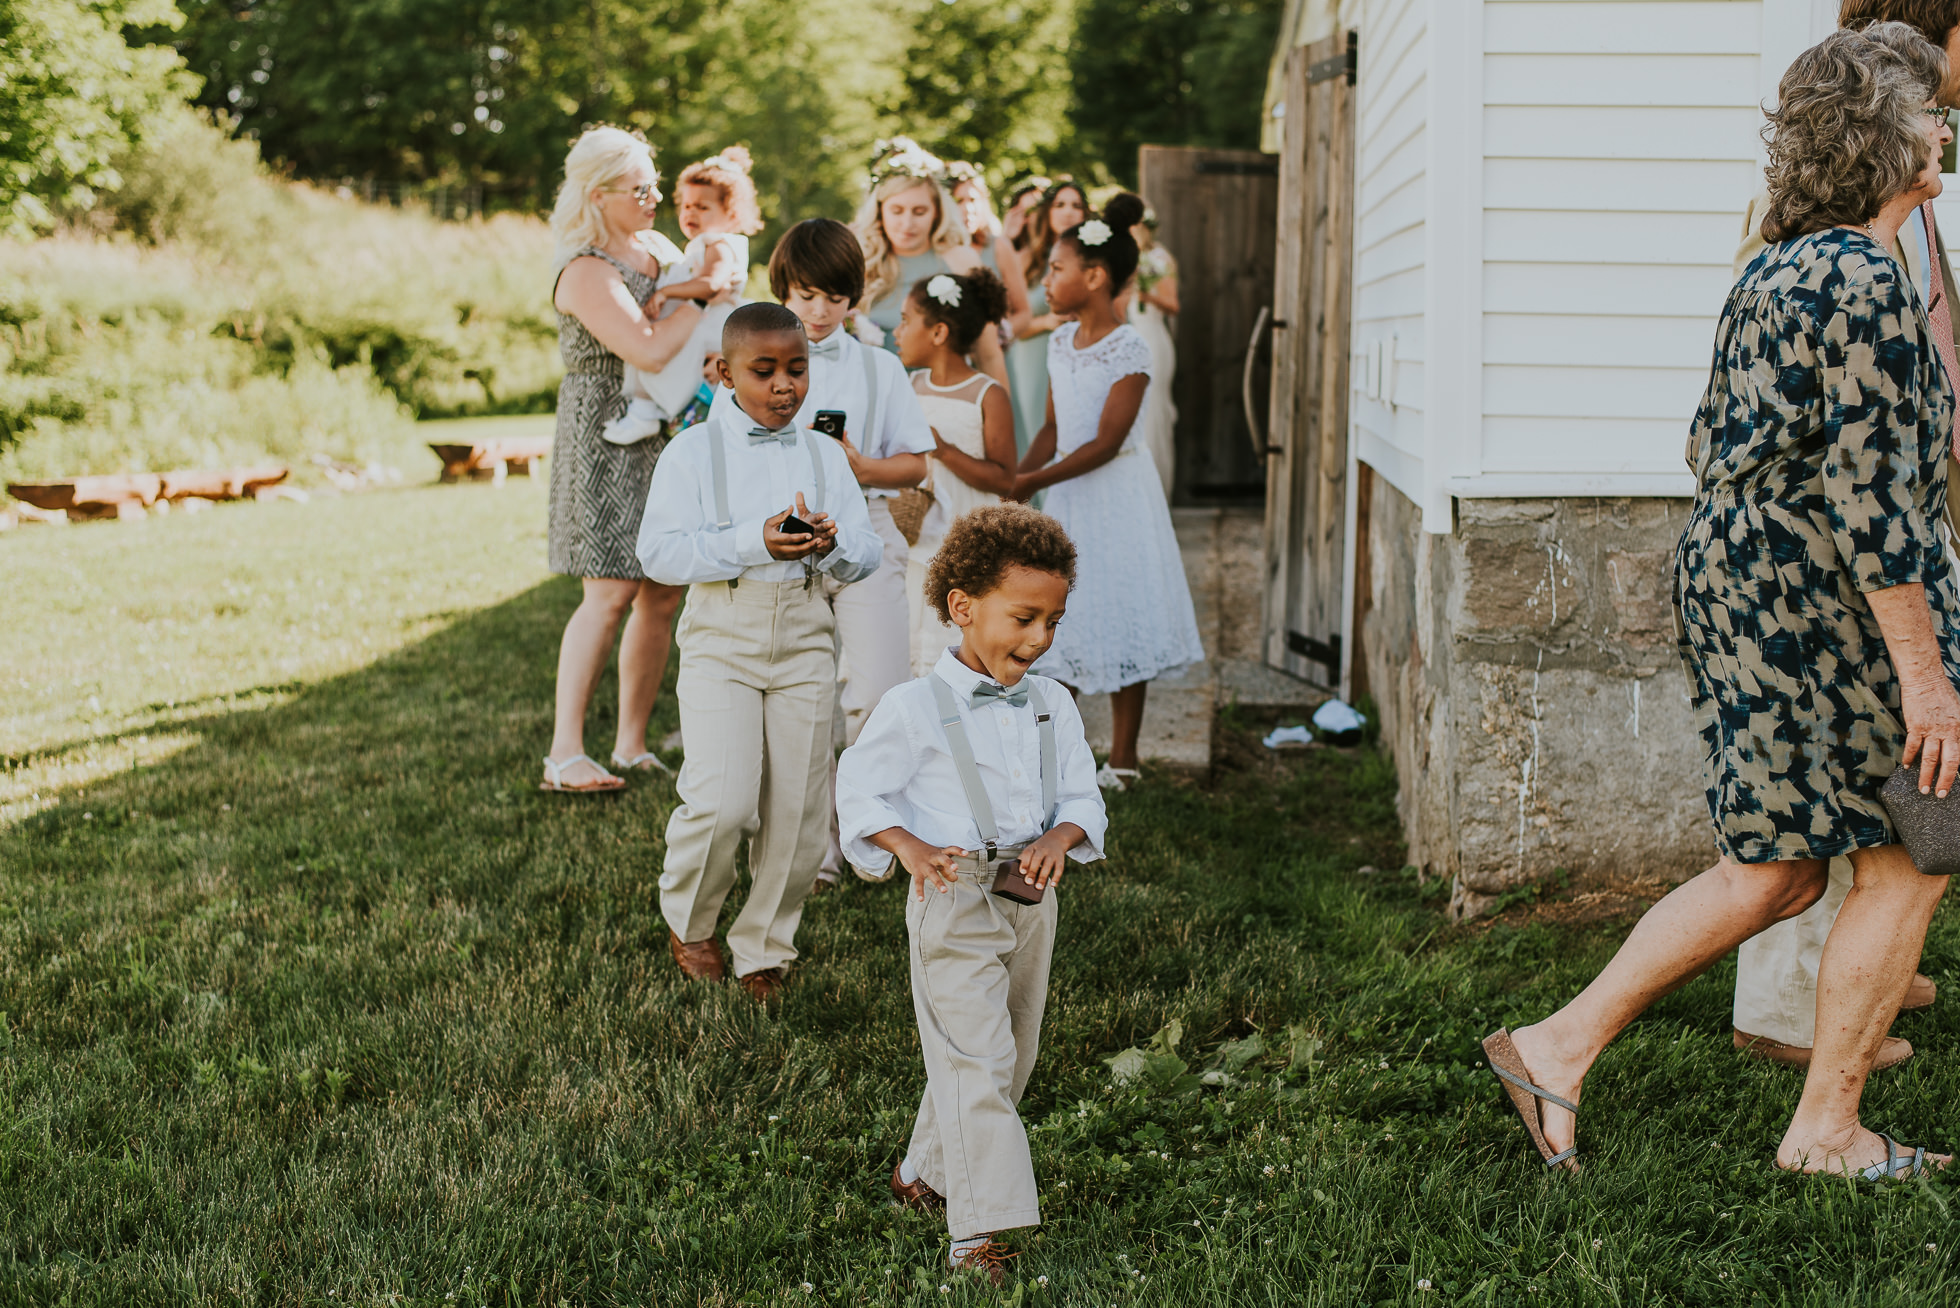 ring bearer farm wedding photographed by Traverse the Tides